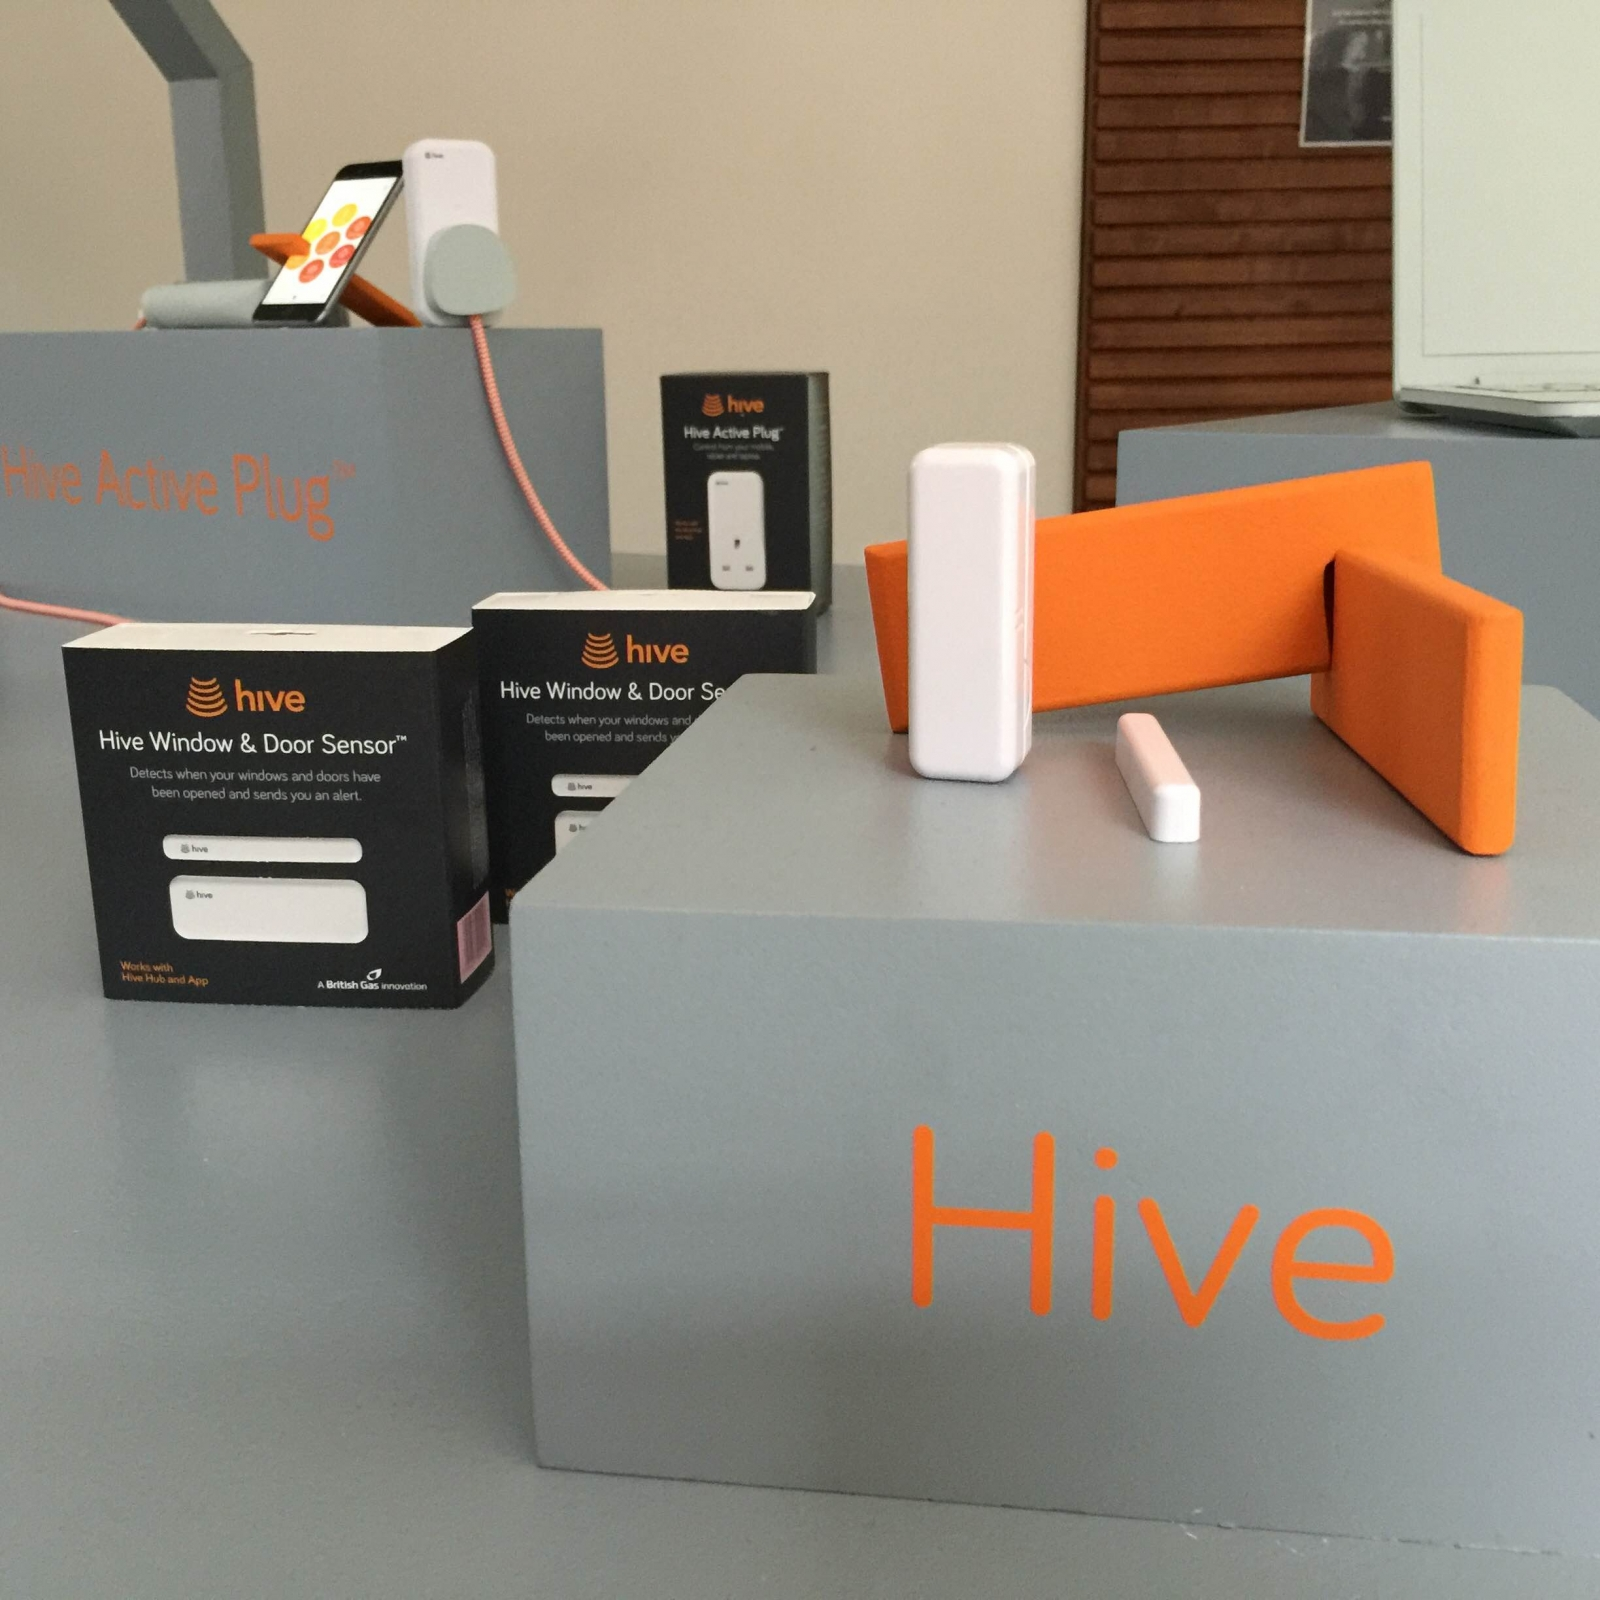 Hive smart home IoT products